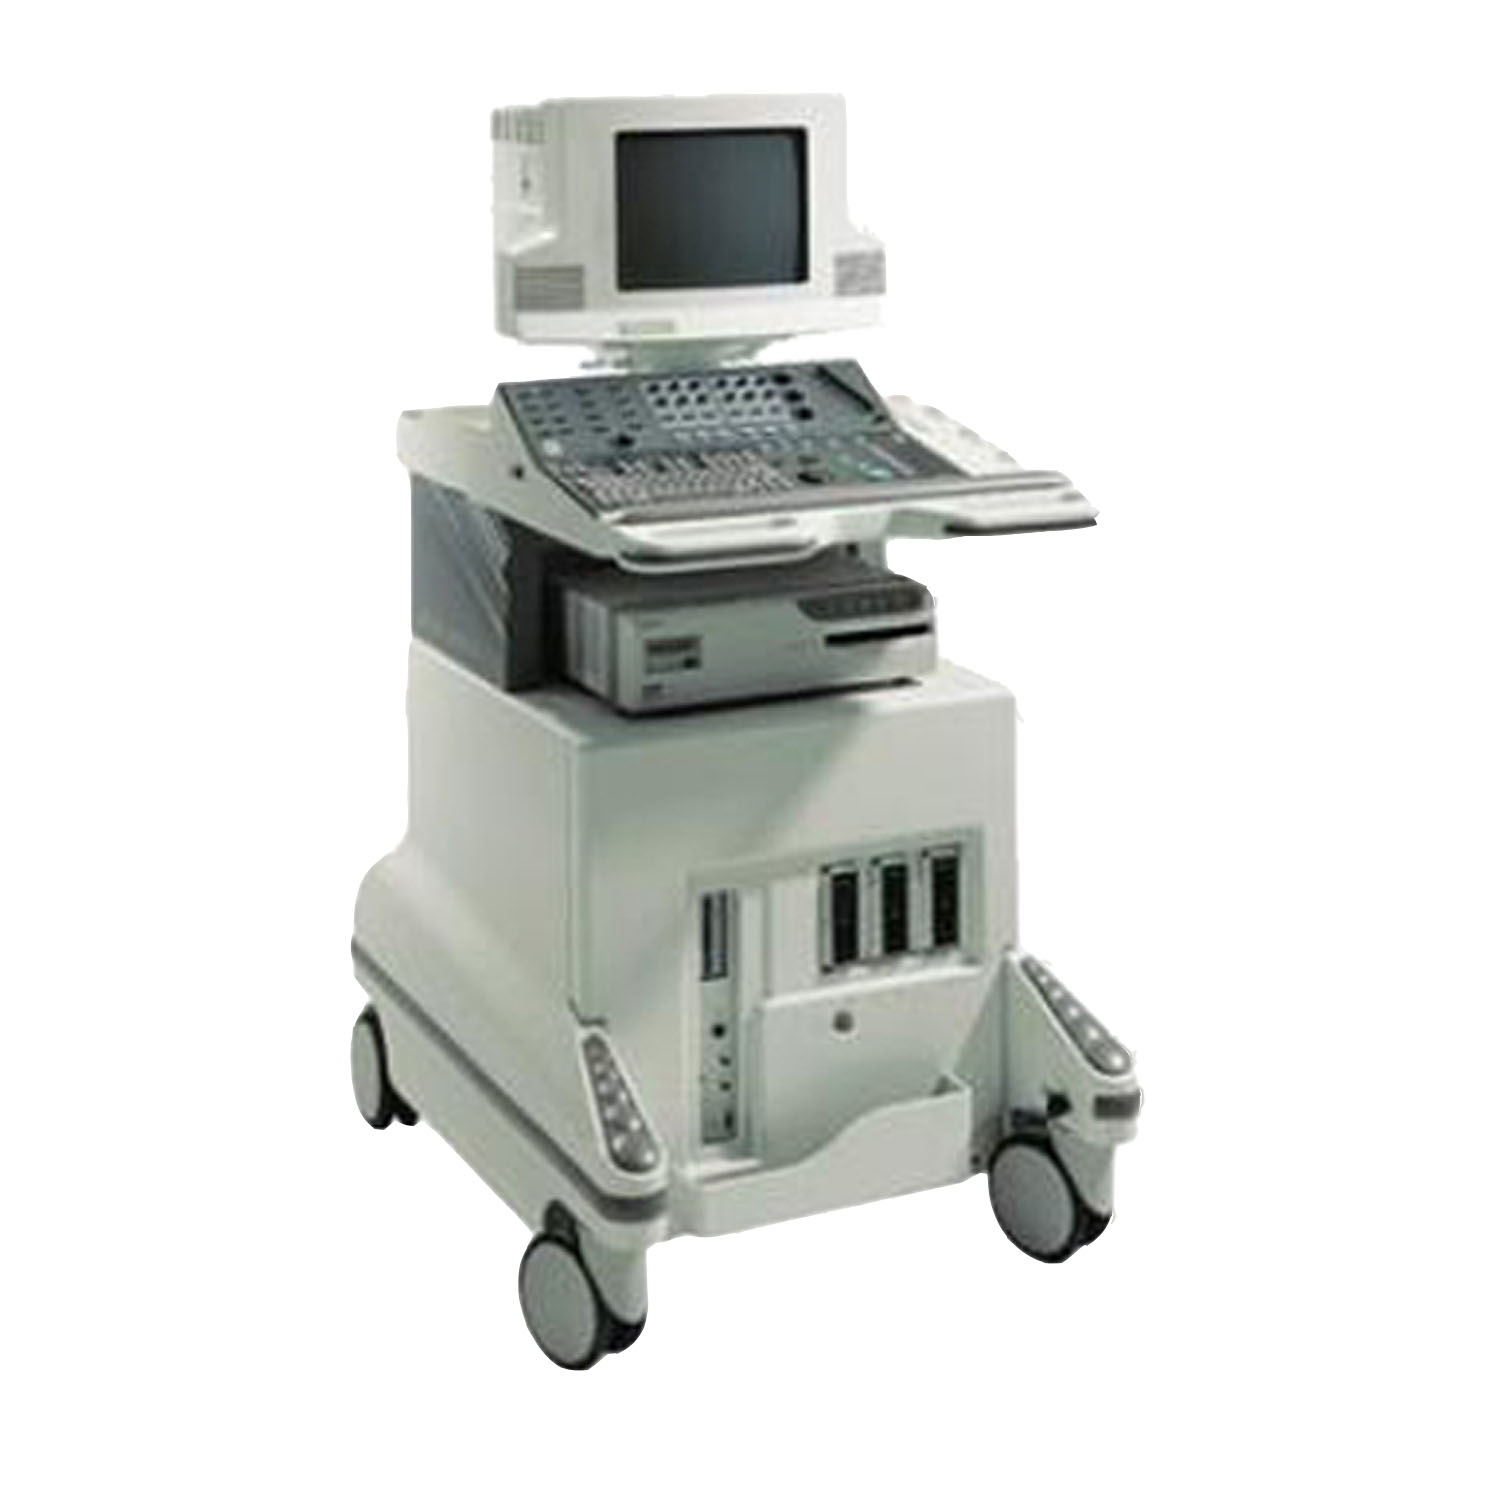 User manual philips atl hdi 5000 | medwrench.